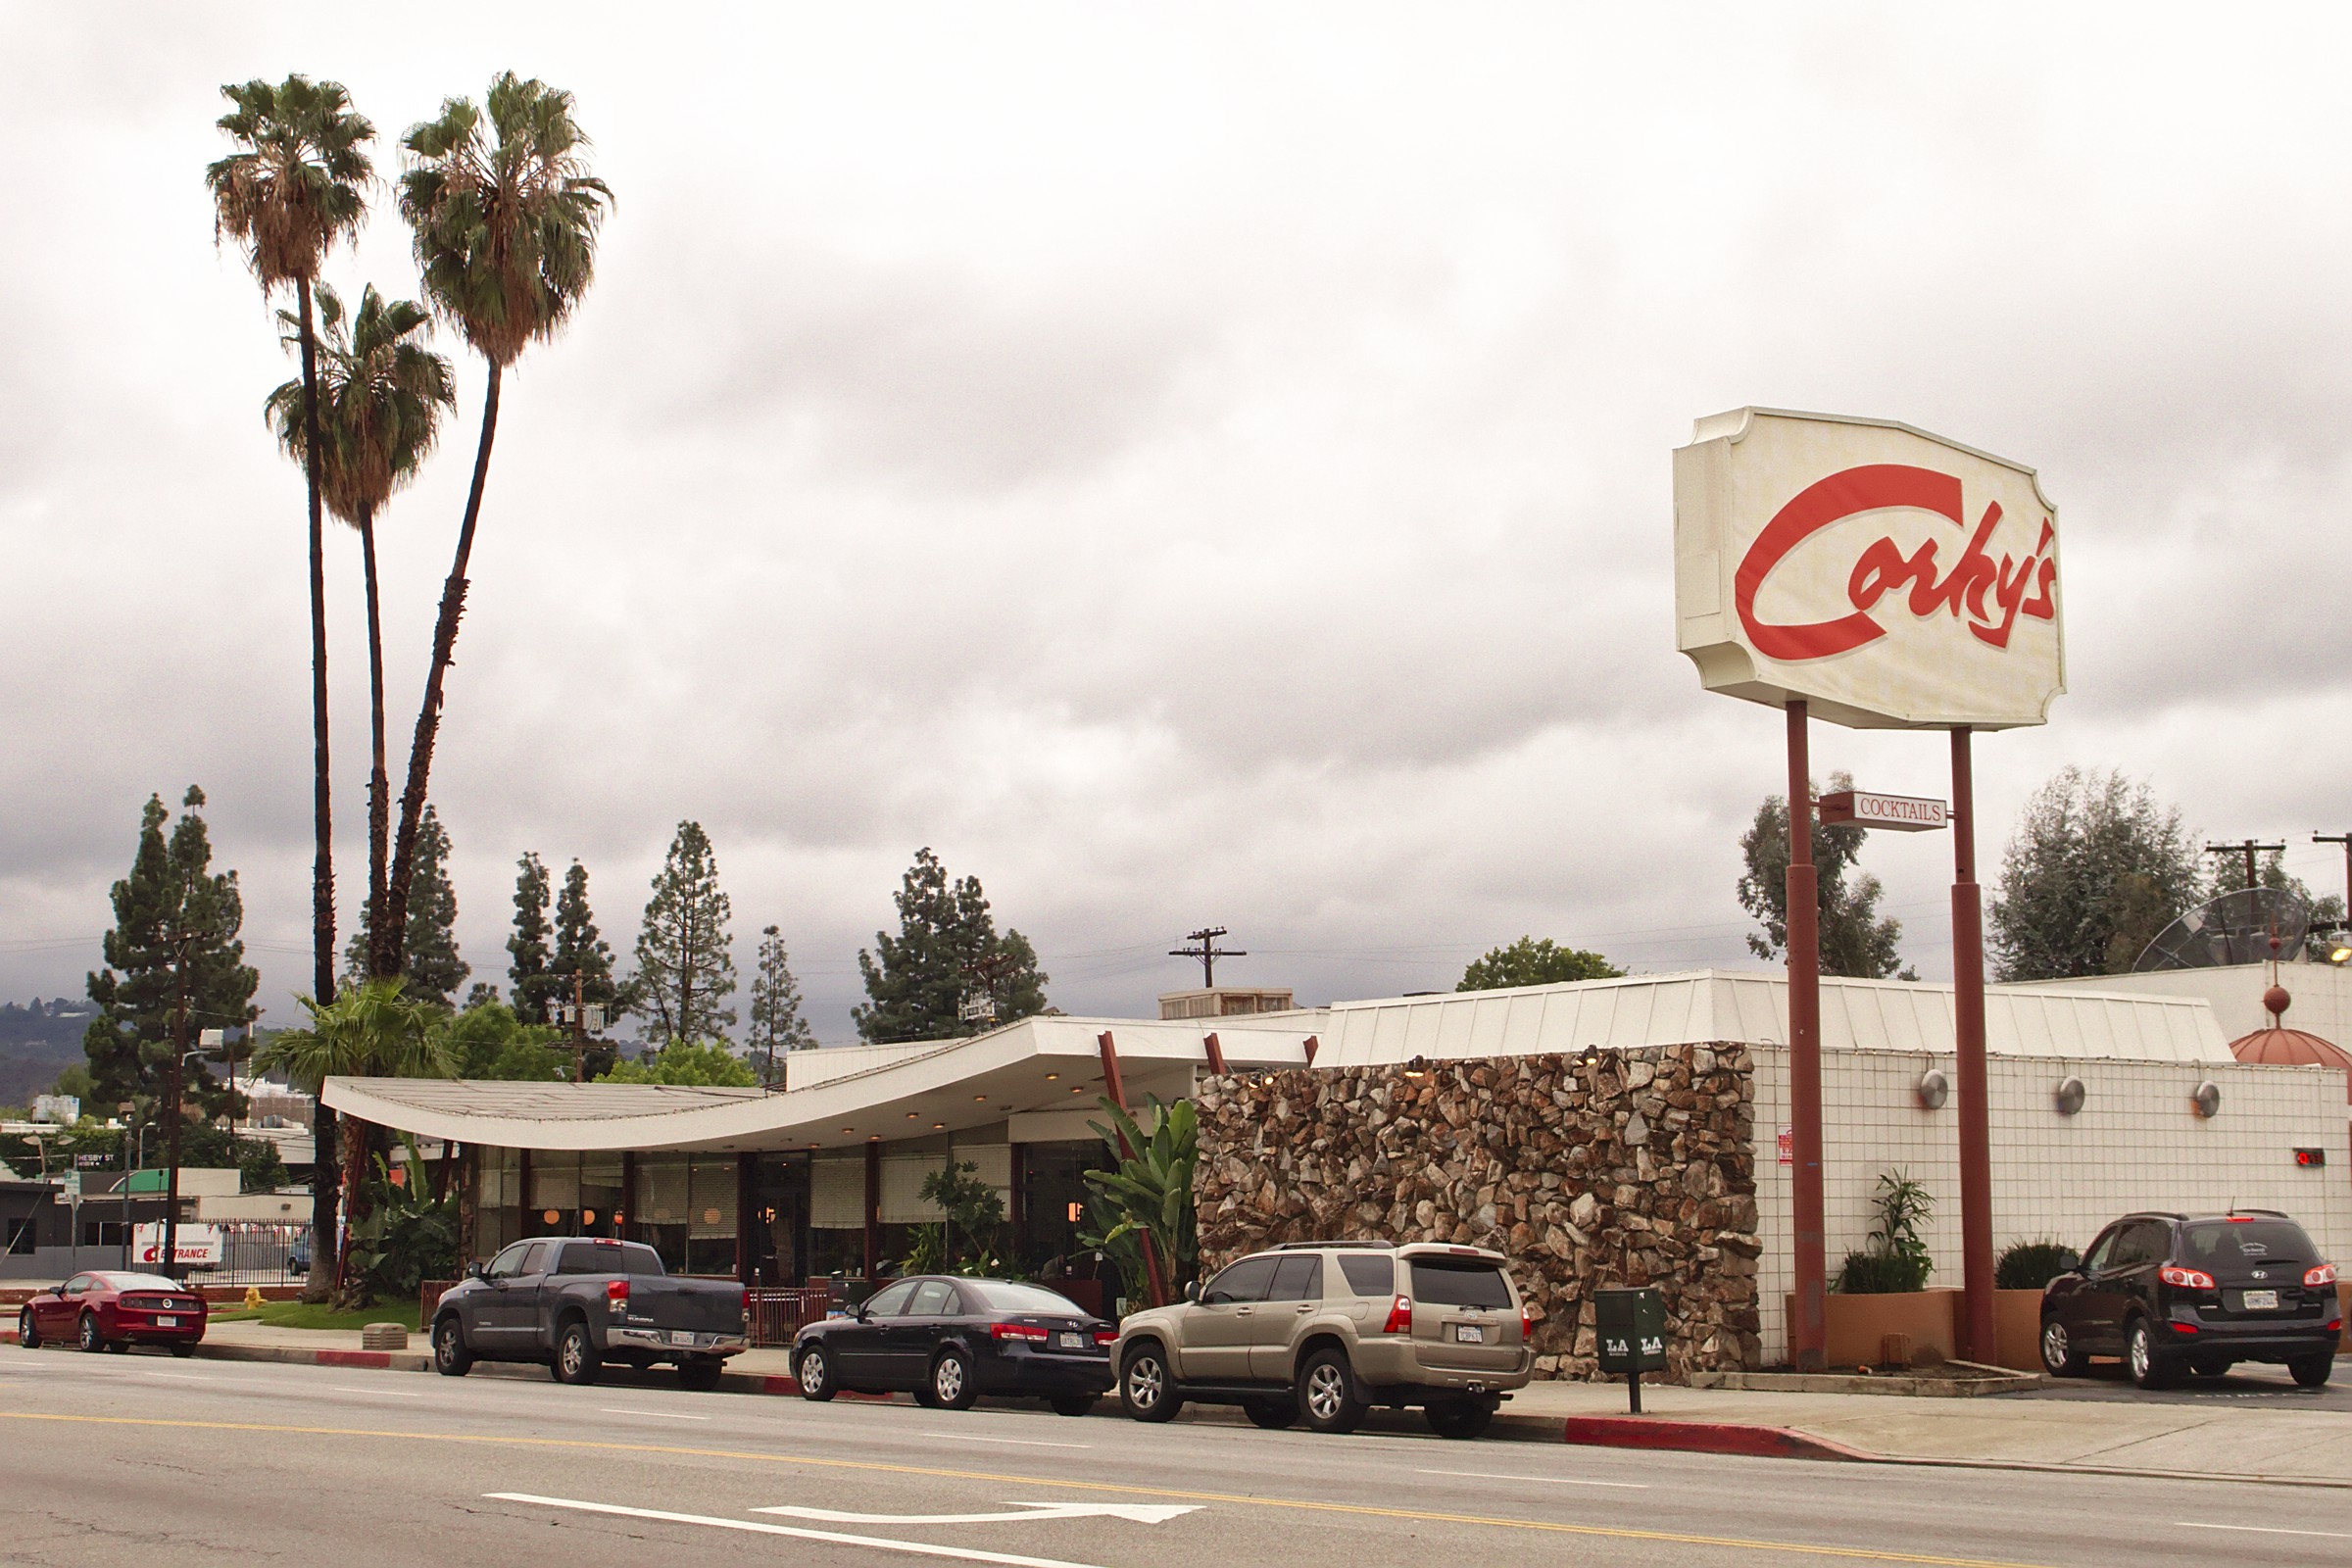 2014 photo of Corky's a low-slung Googie-style restaurant